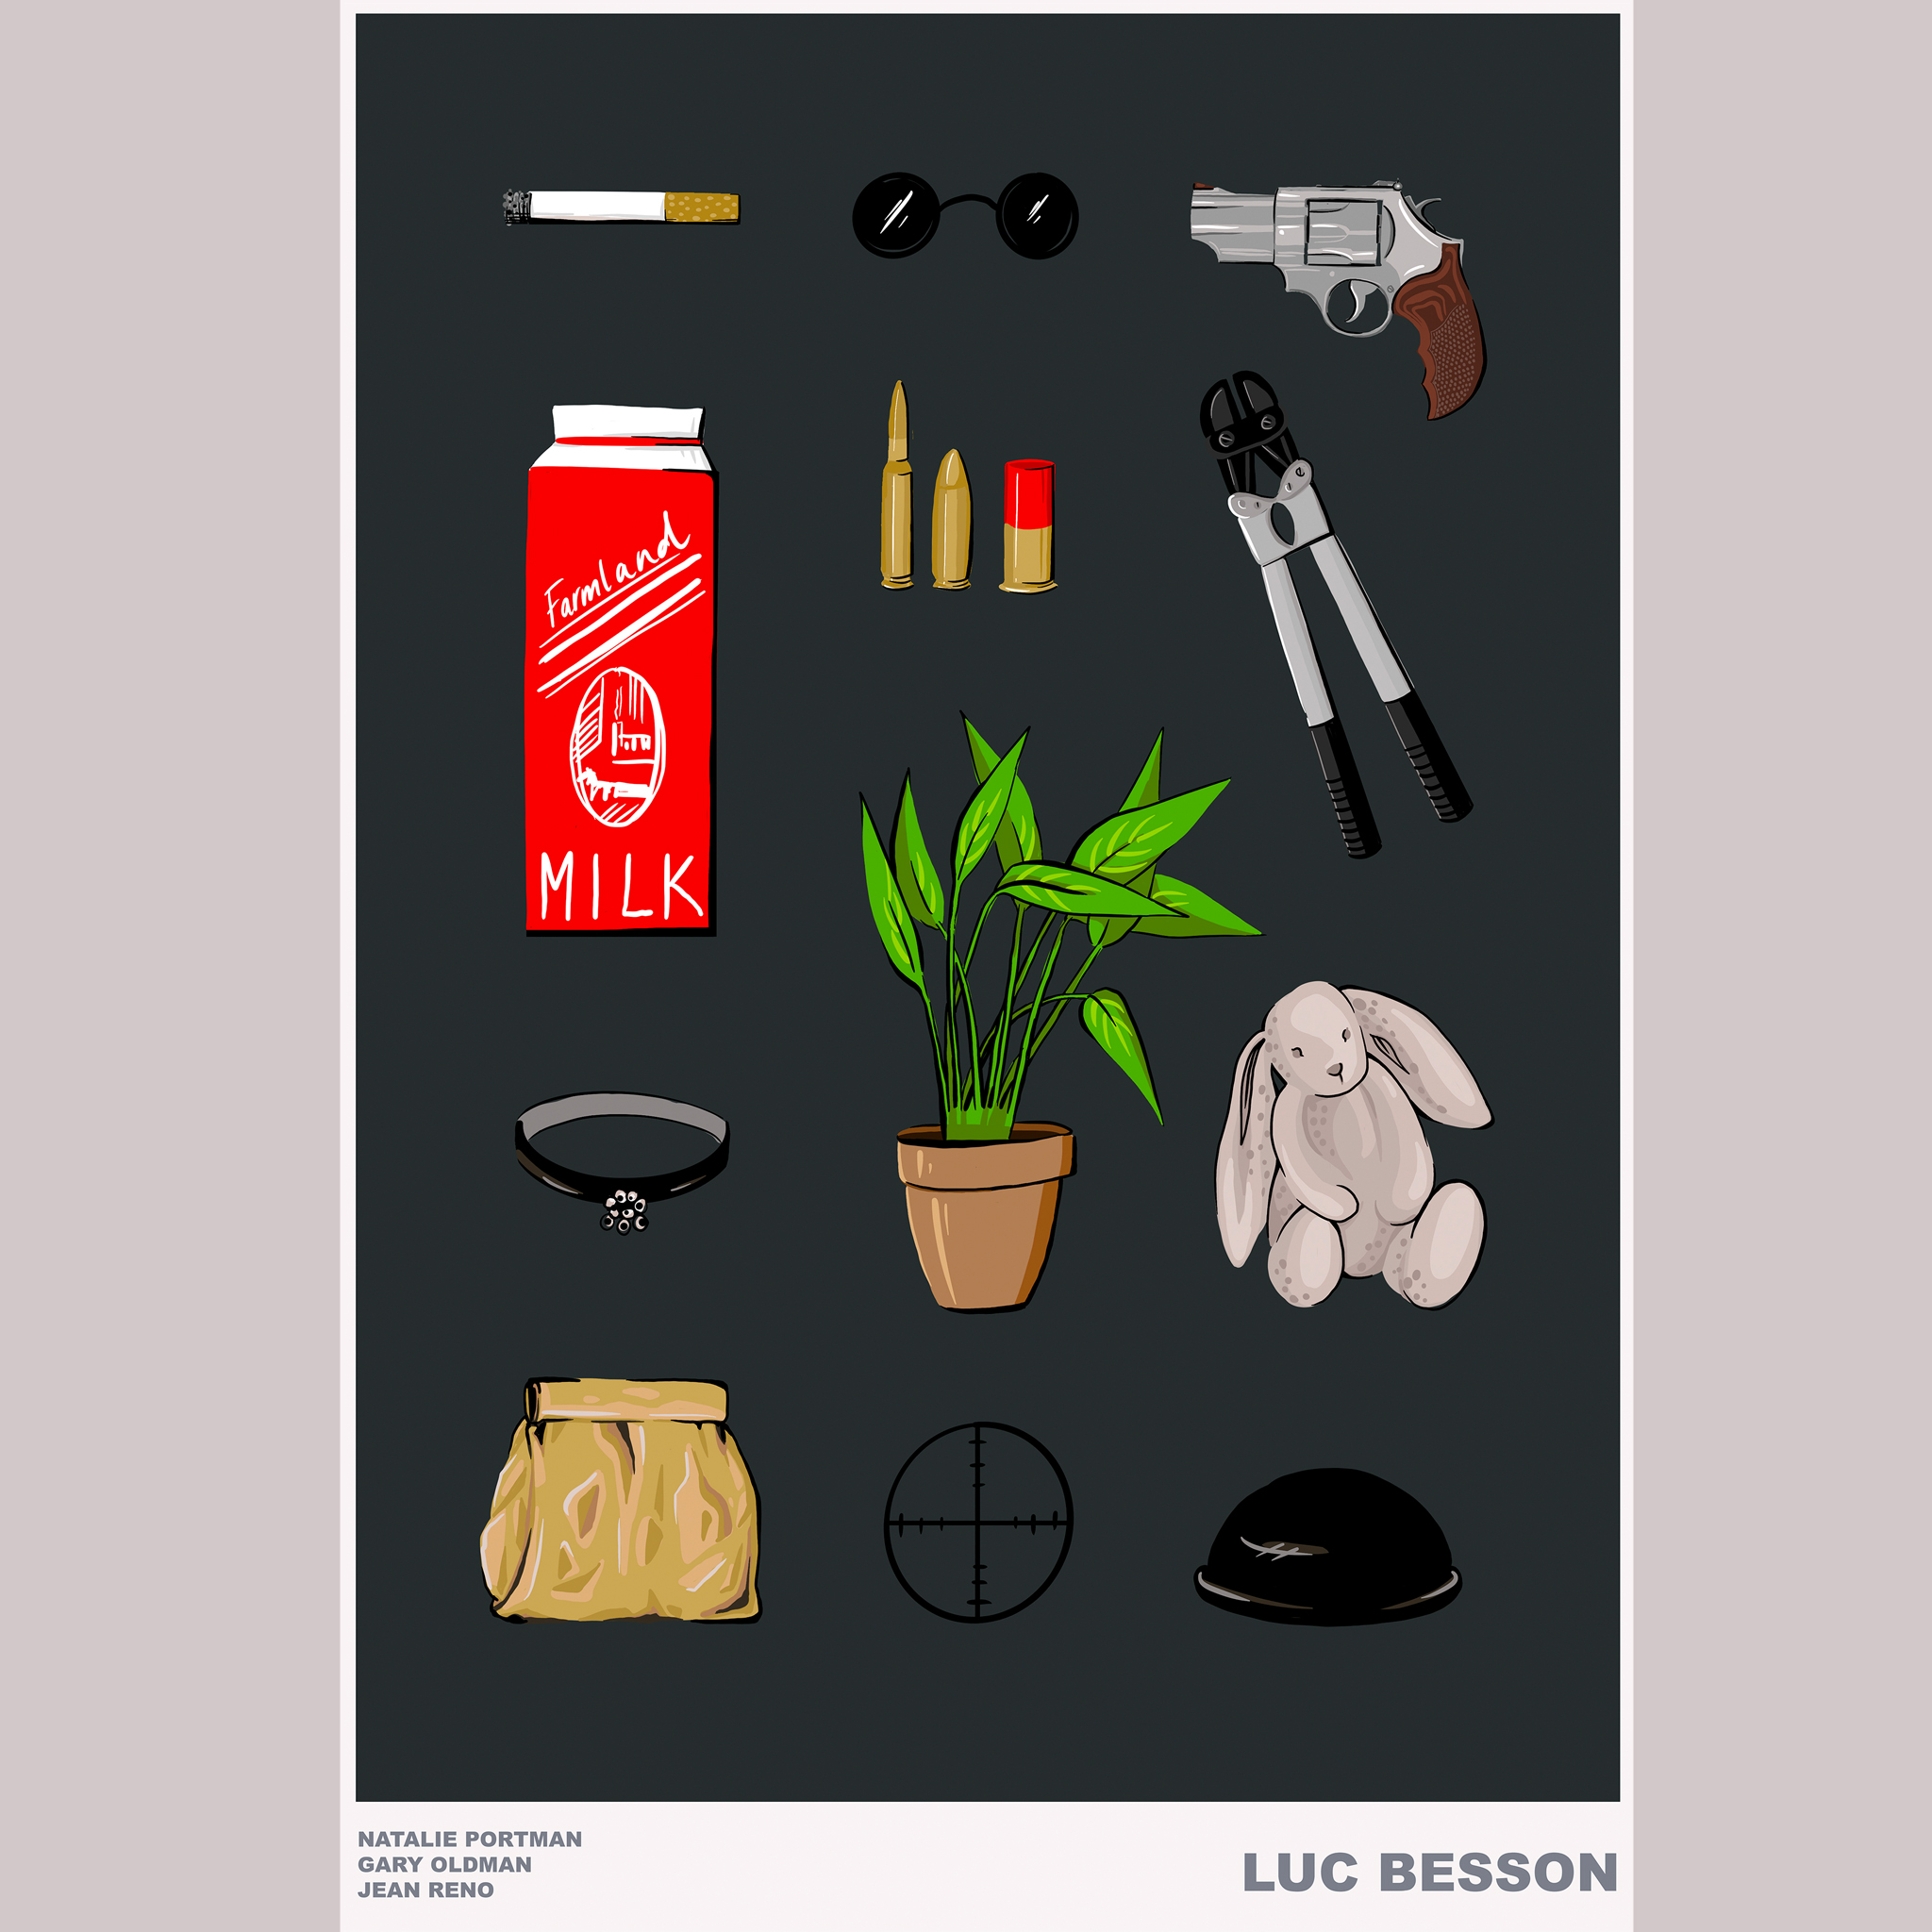 aase hopstock illustration movie poster design flatlay